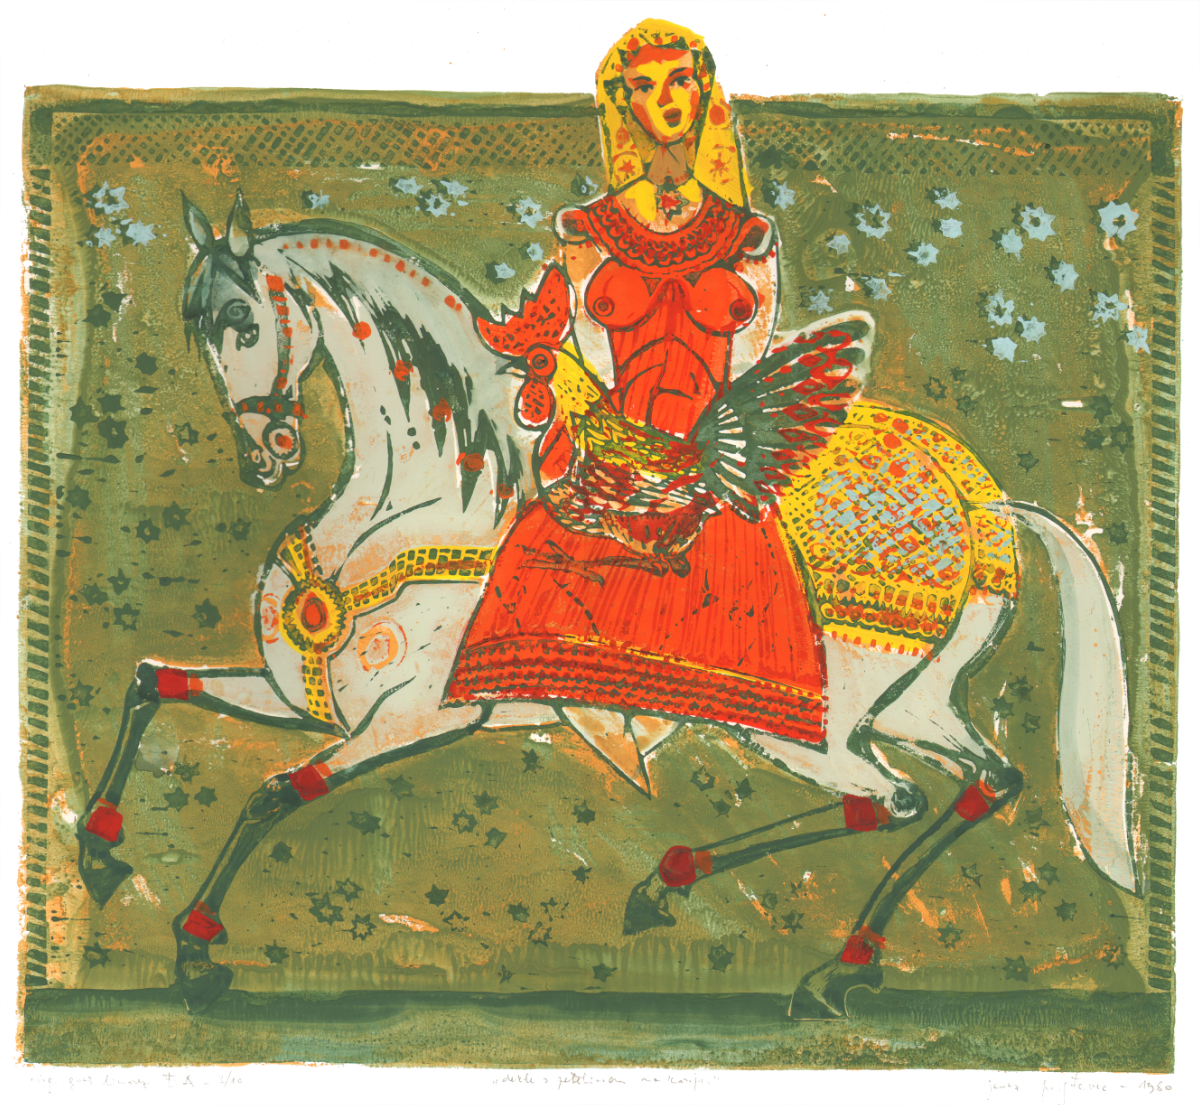 Woman with Rooster on a Horse , 1980, 50 x 45 cm; 10 prints series